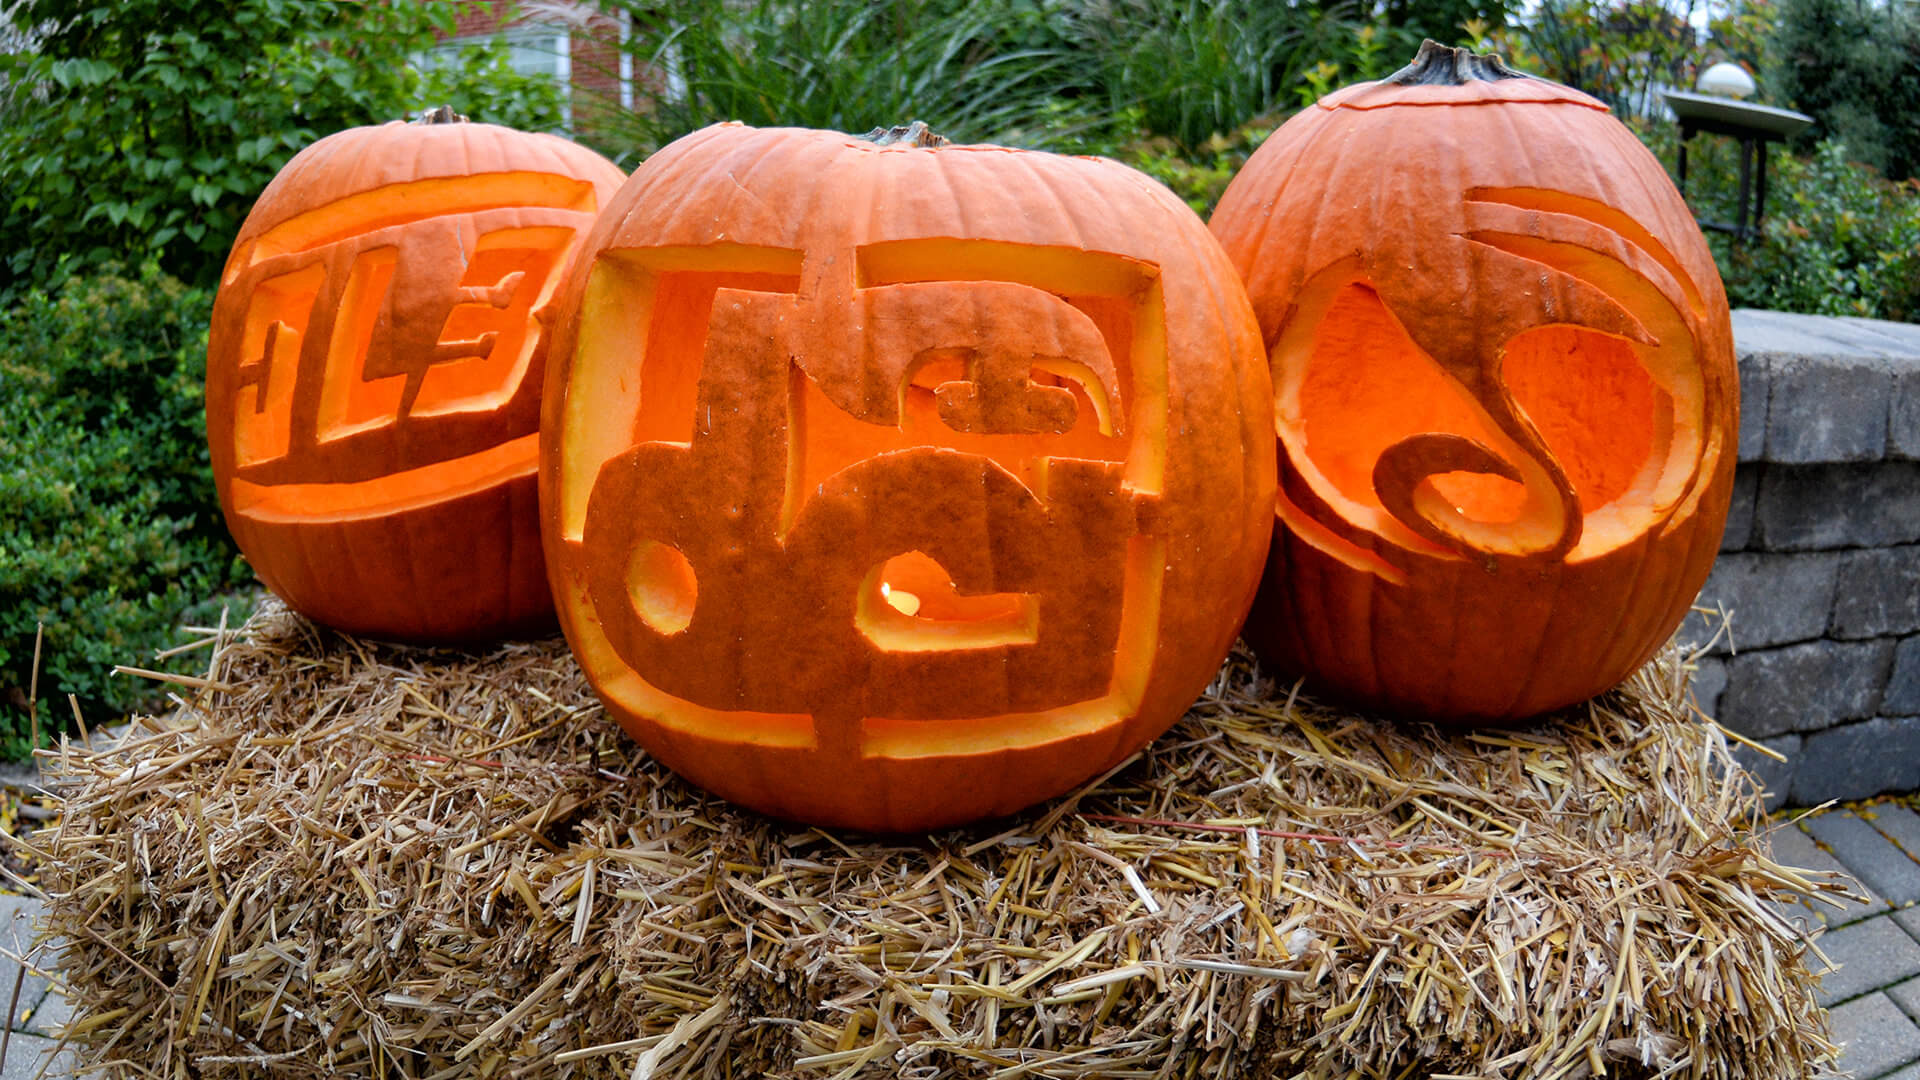 Drum corps pumpkin carving templates